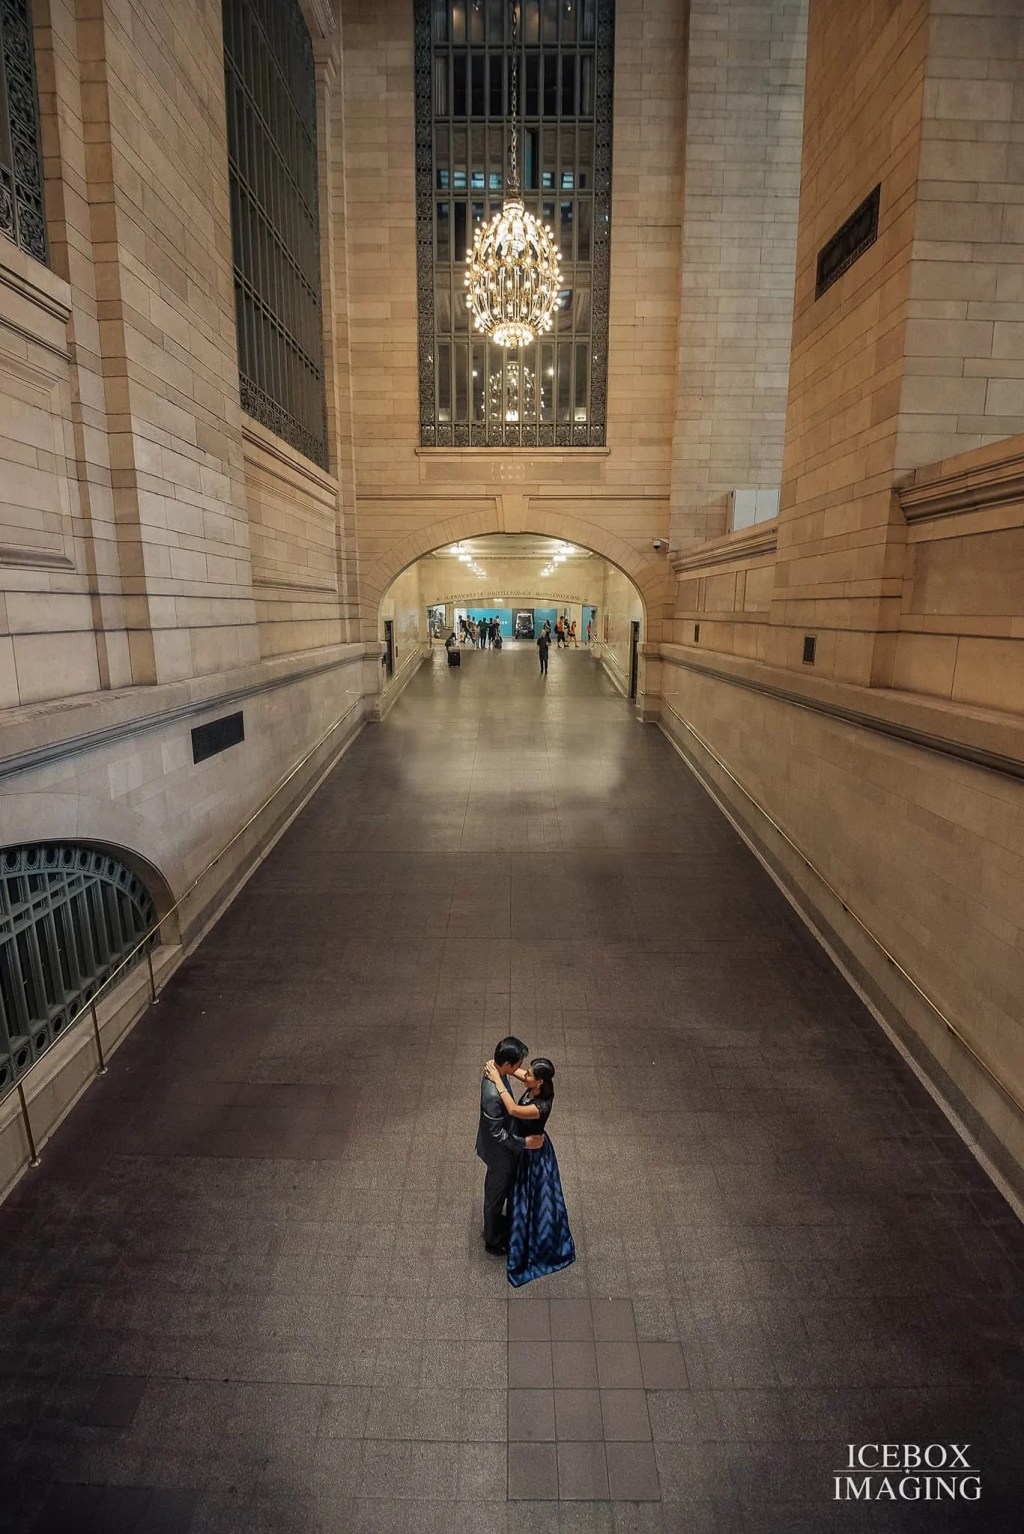 grand central station, icebox imaging